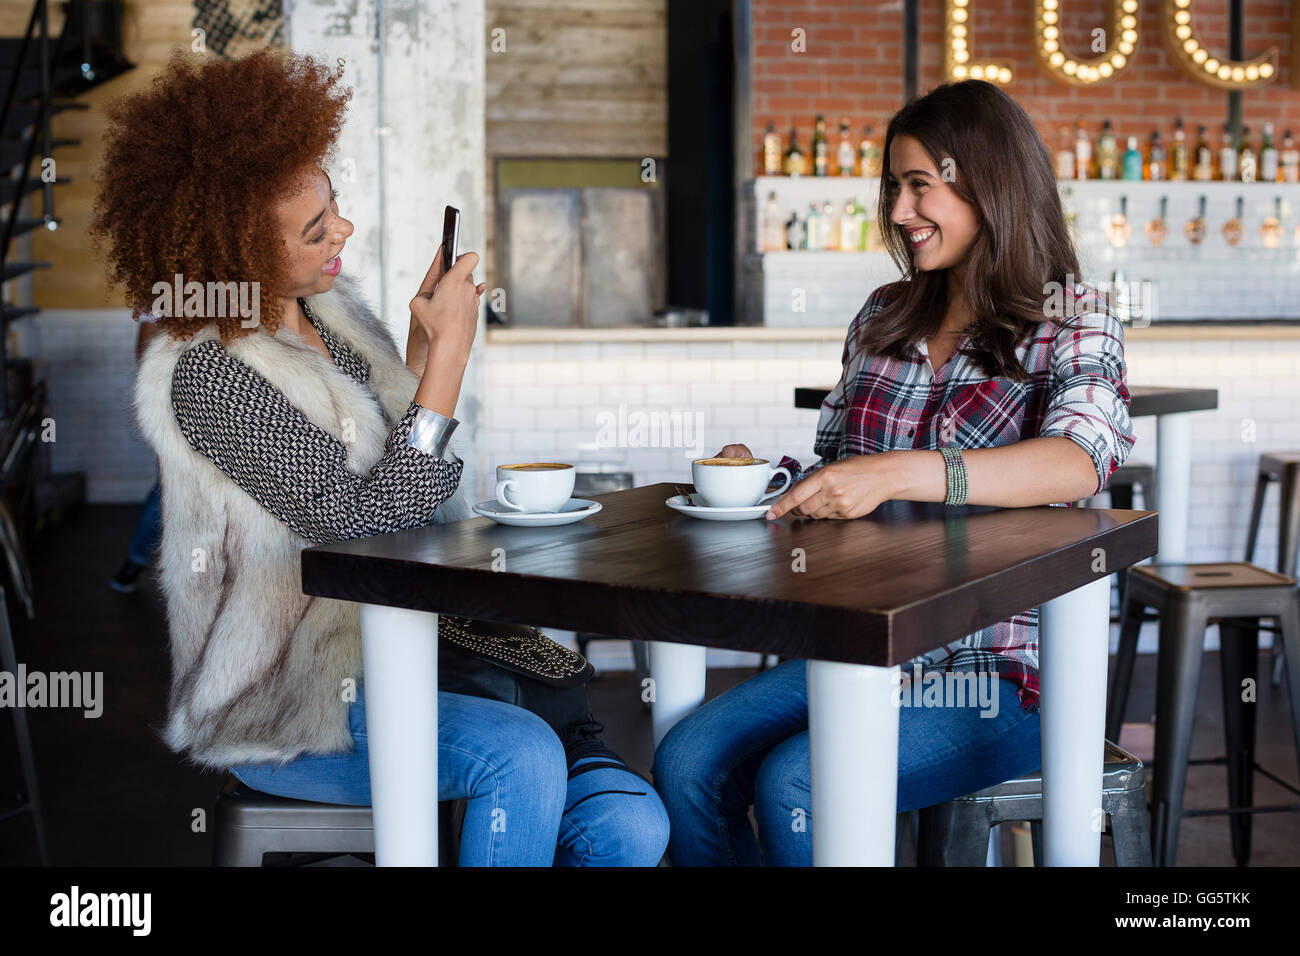 Young woman taking a picture of her friend with smartphone at cafe Stock Photo